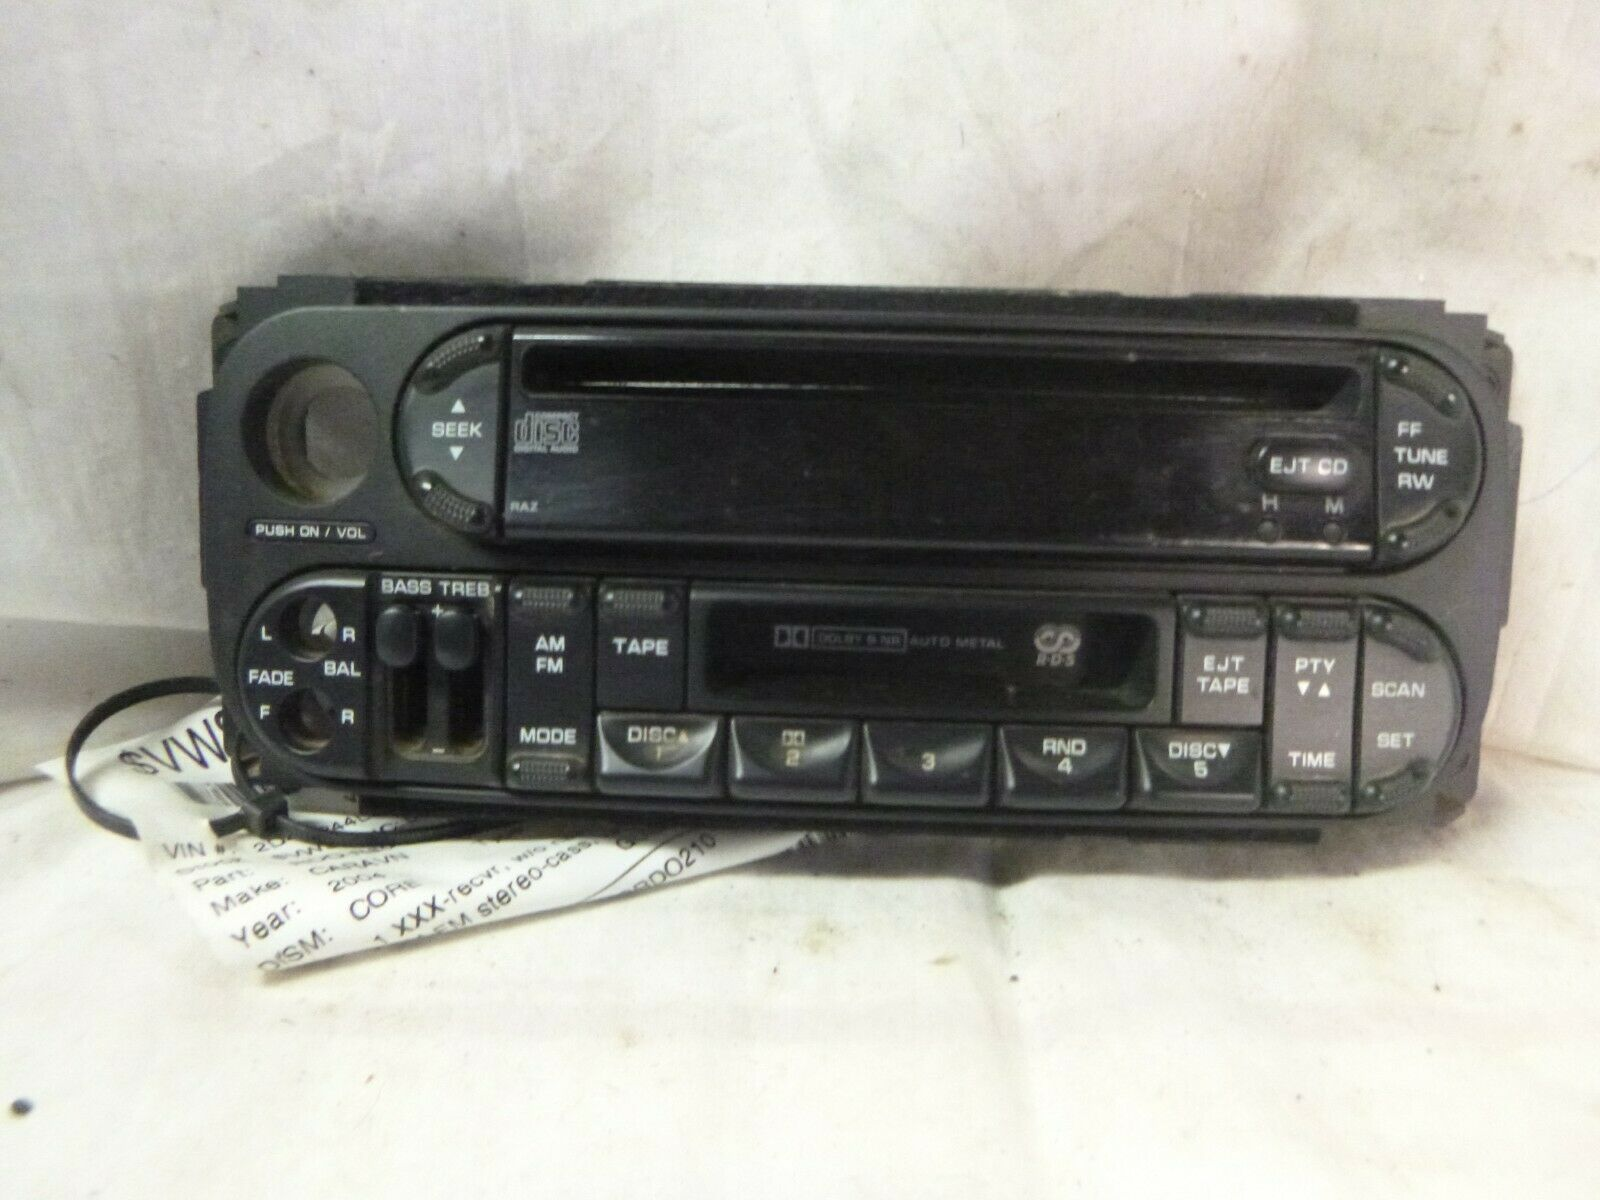 02 03 04 05 06 07 Dodge Chrysler Jeep Radio Cd Cassette Face Plate P05064300AD